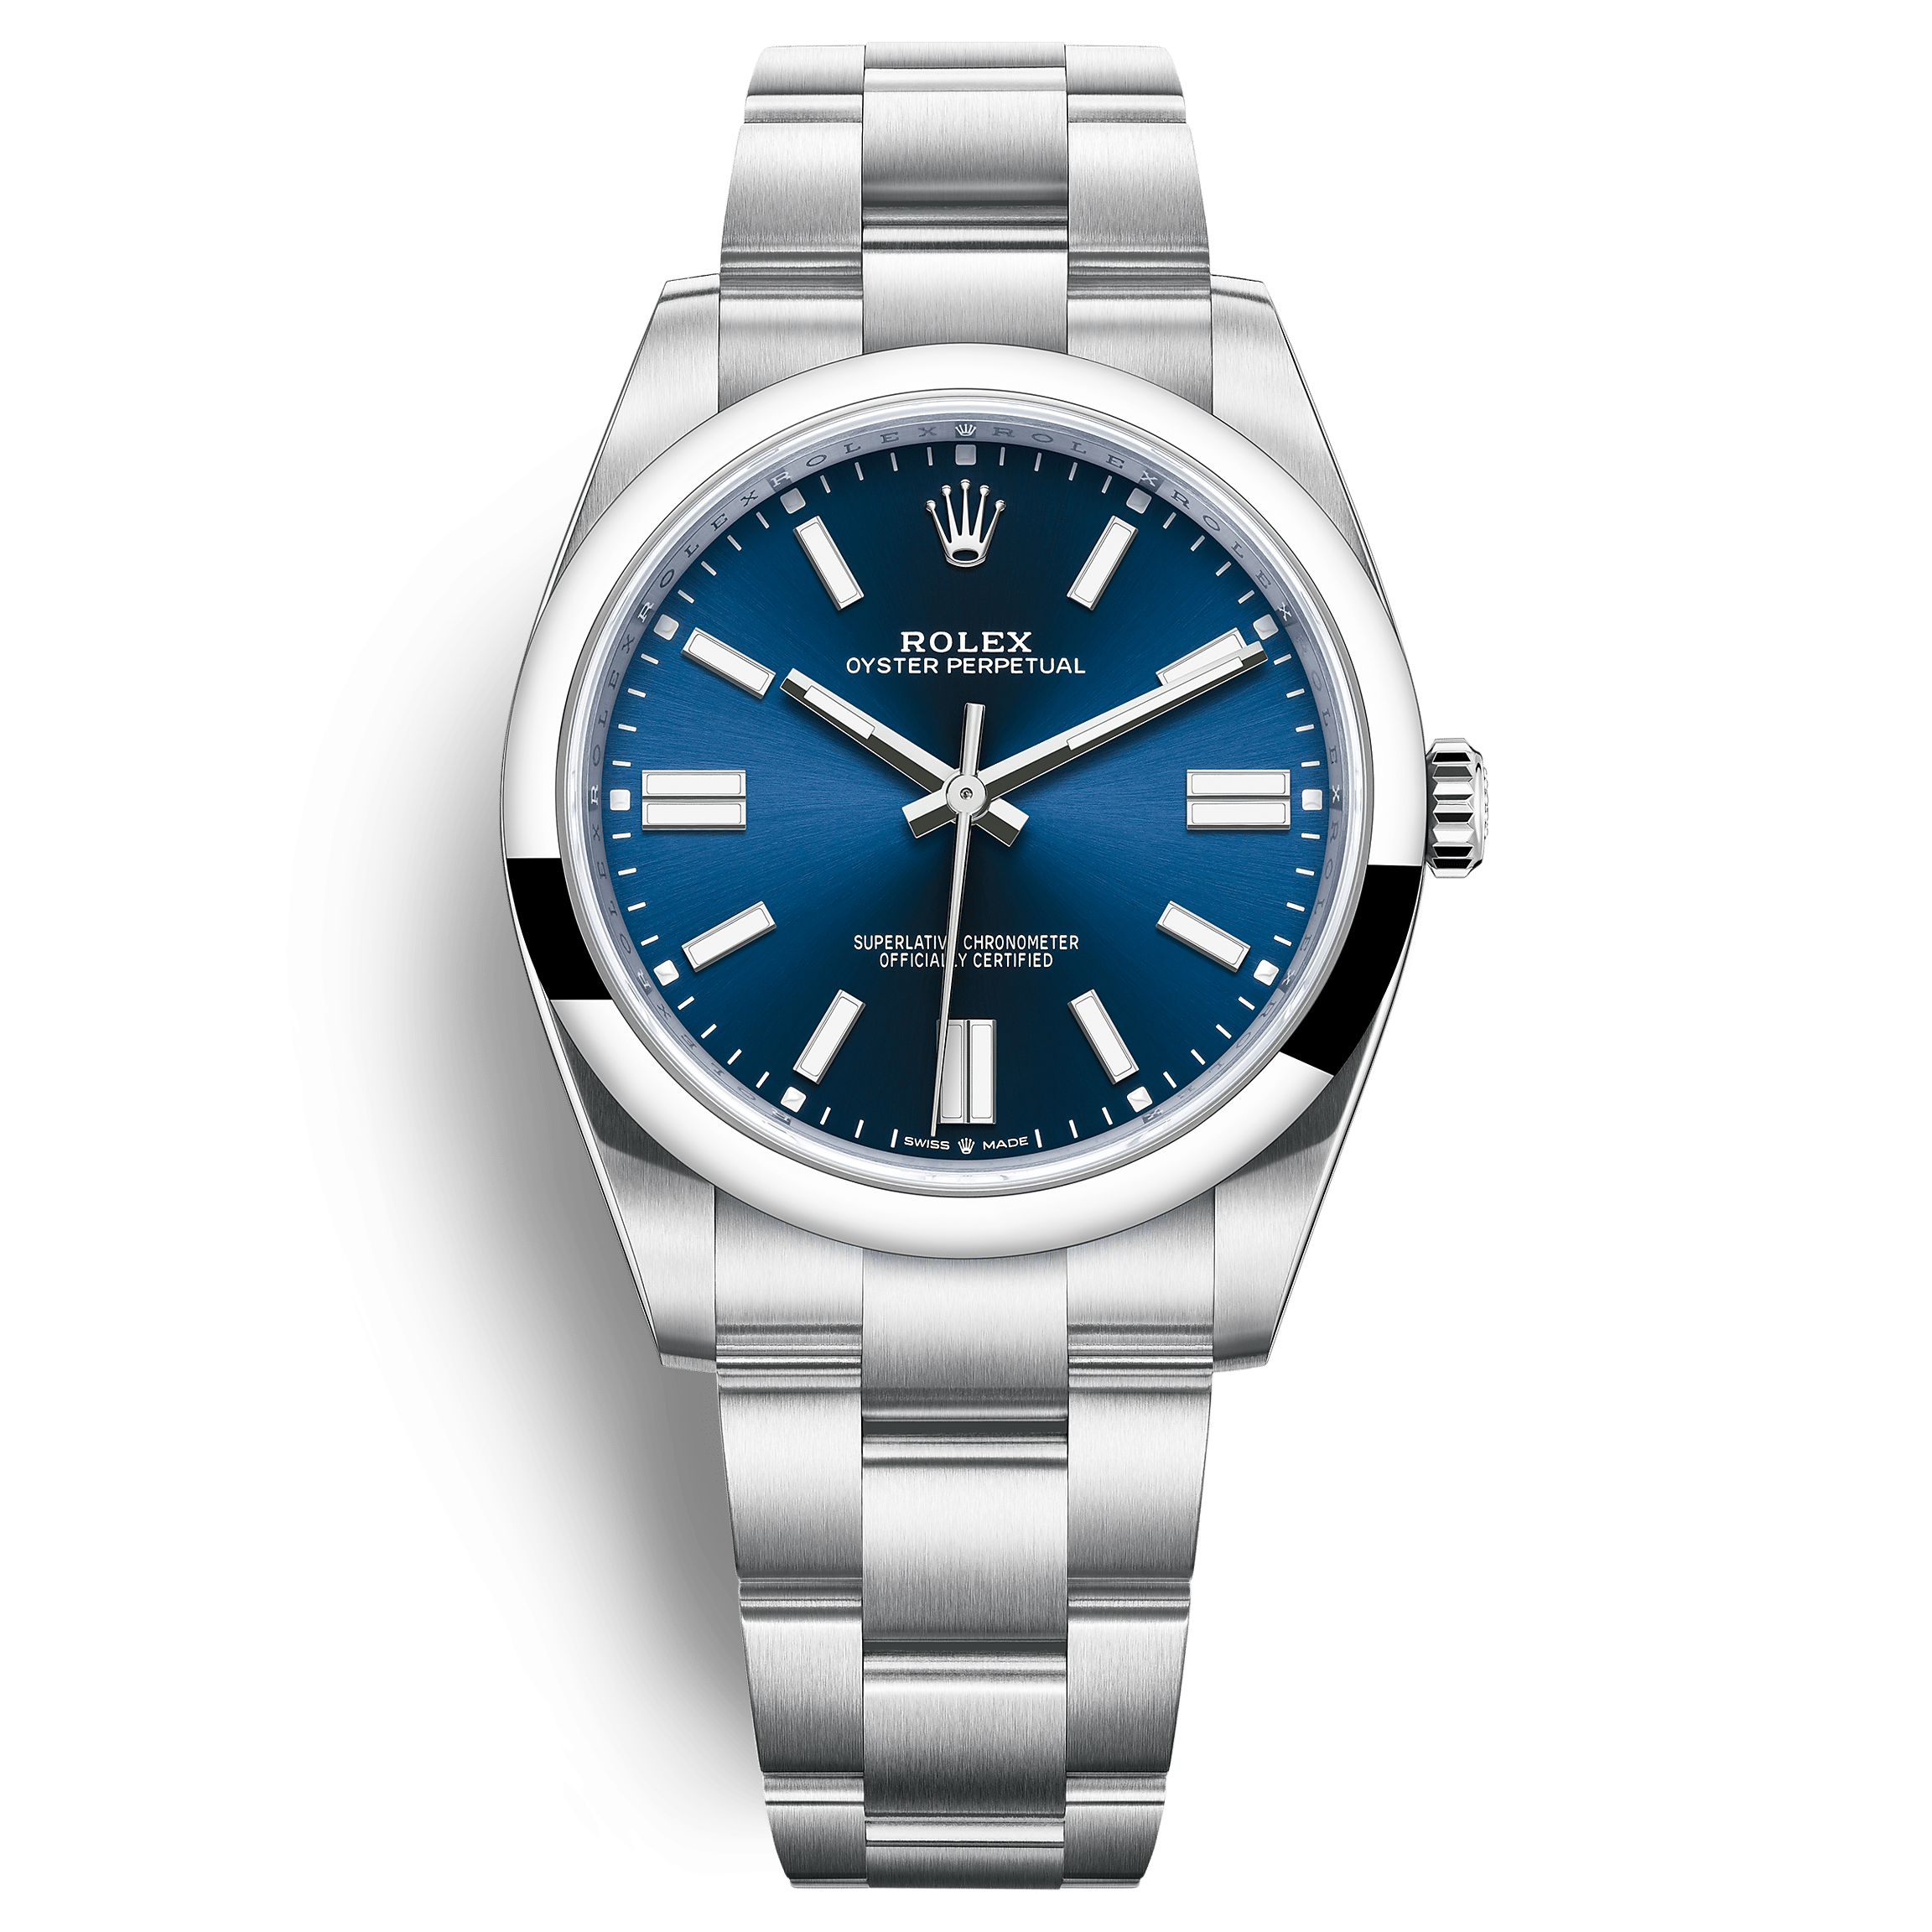 Rolex 124300-0003 Oyster Perpetual 41mm